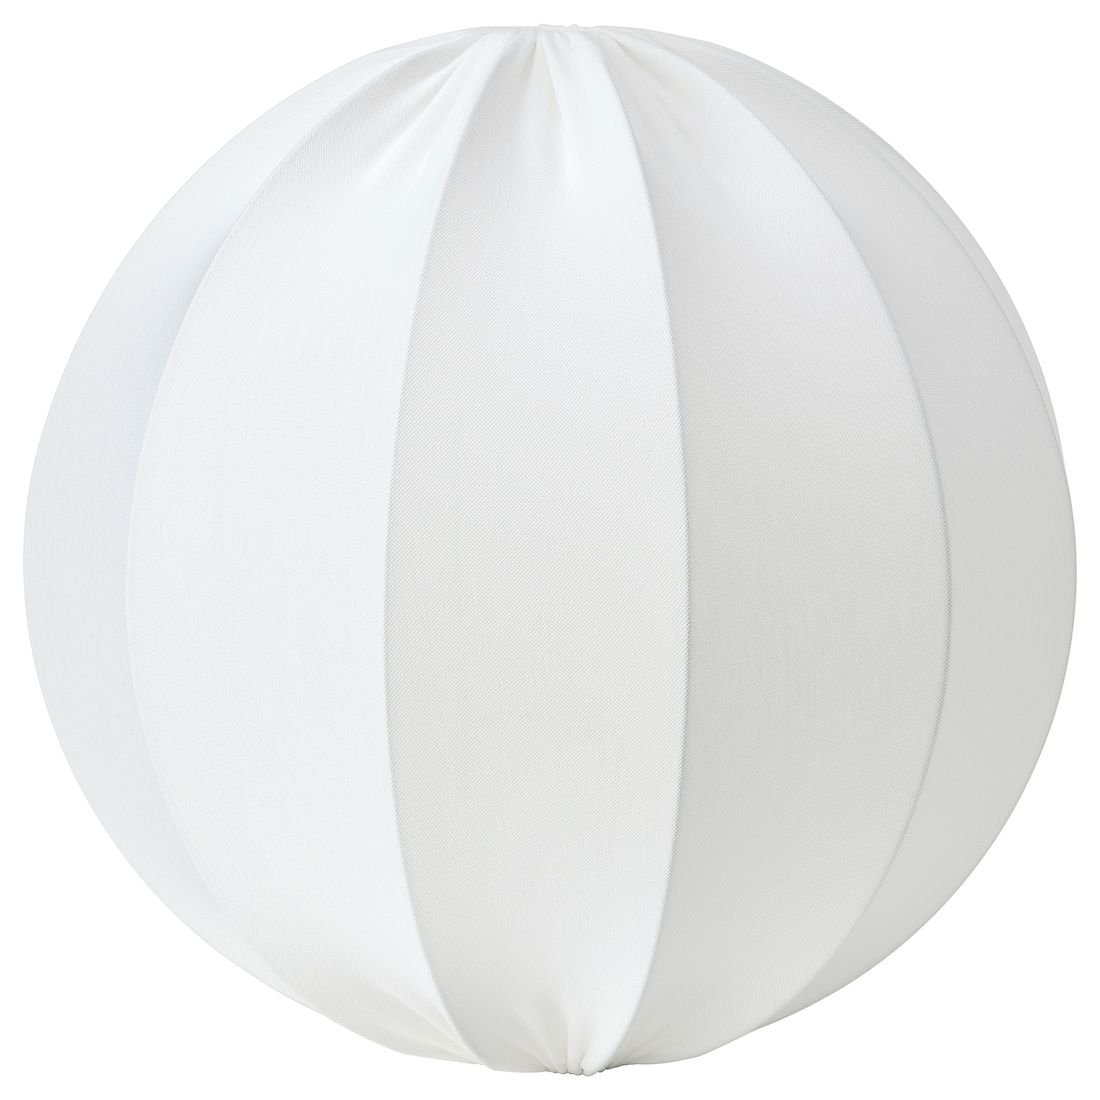 Regnskur Pendant Lamp Shade Round White Ikea In 2020 Pendant Lamp Shade Ikea Lamp Shade Pendant Lamp